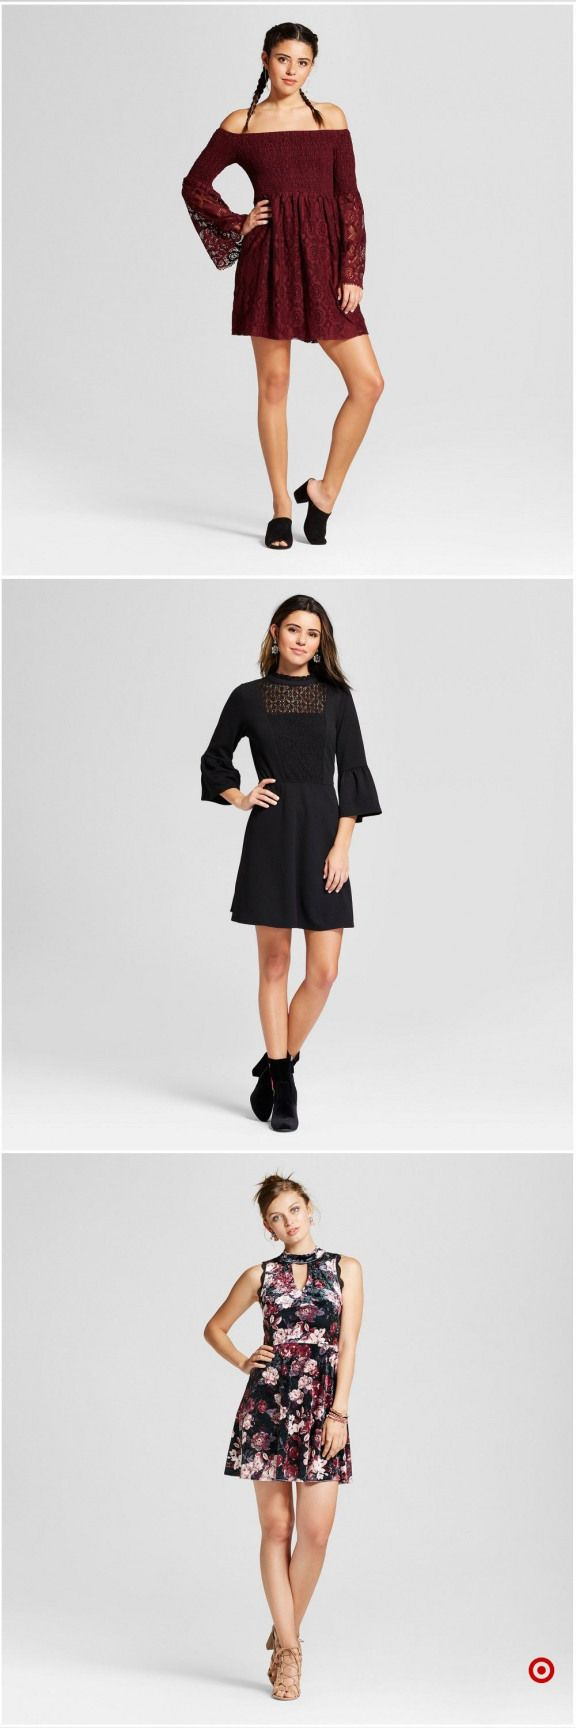 Shop Target For A Line Dresses You Will Love At Great Low Prices Free Shipping On Orders Of 35 Or Free Same Day Pick School Event Dress A Line Dress Dresses [ 1728 x 576 Pixel ]